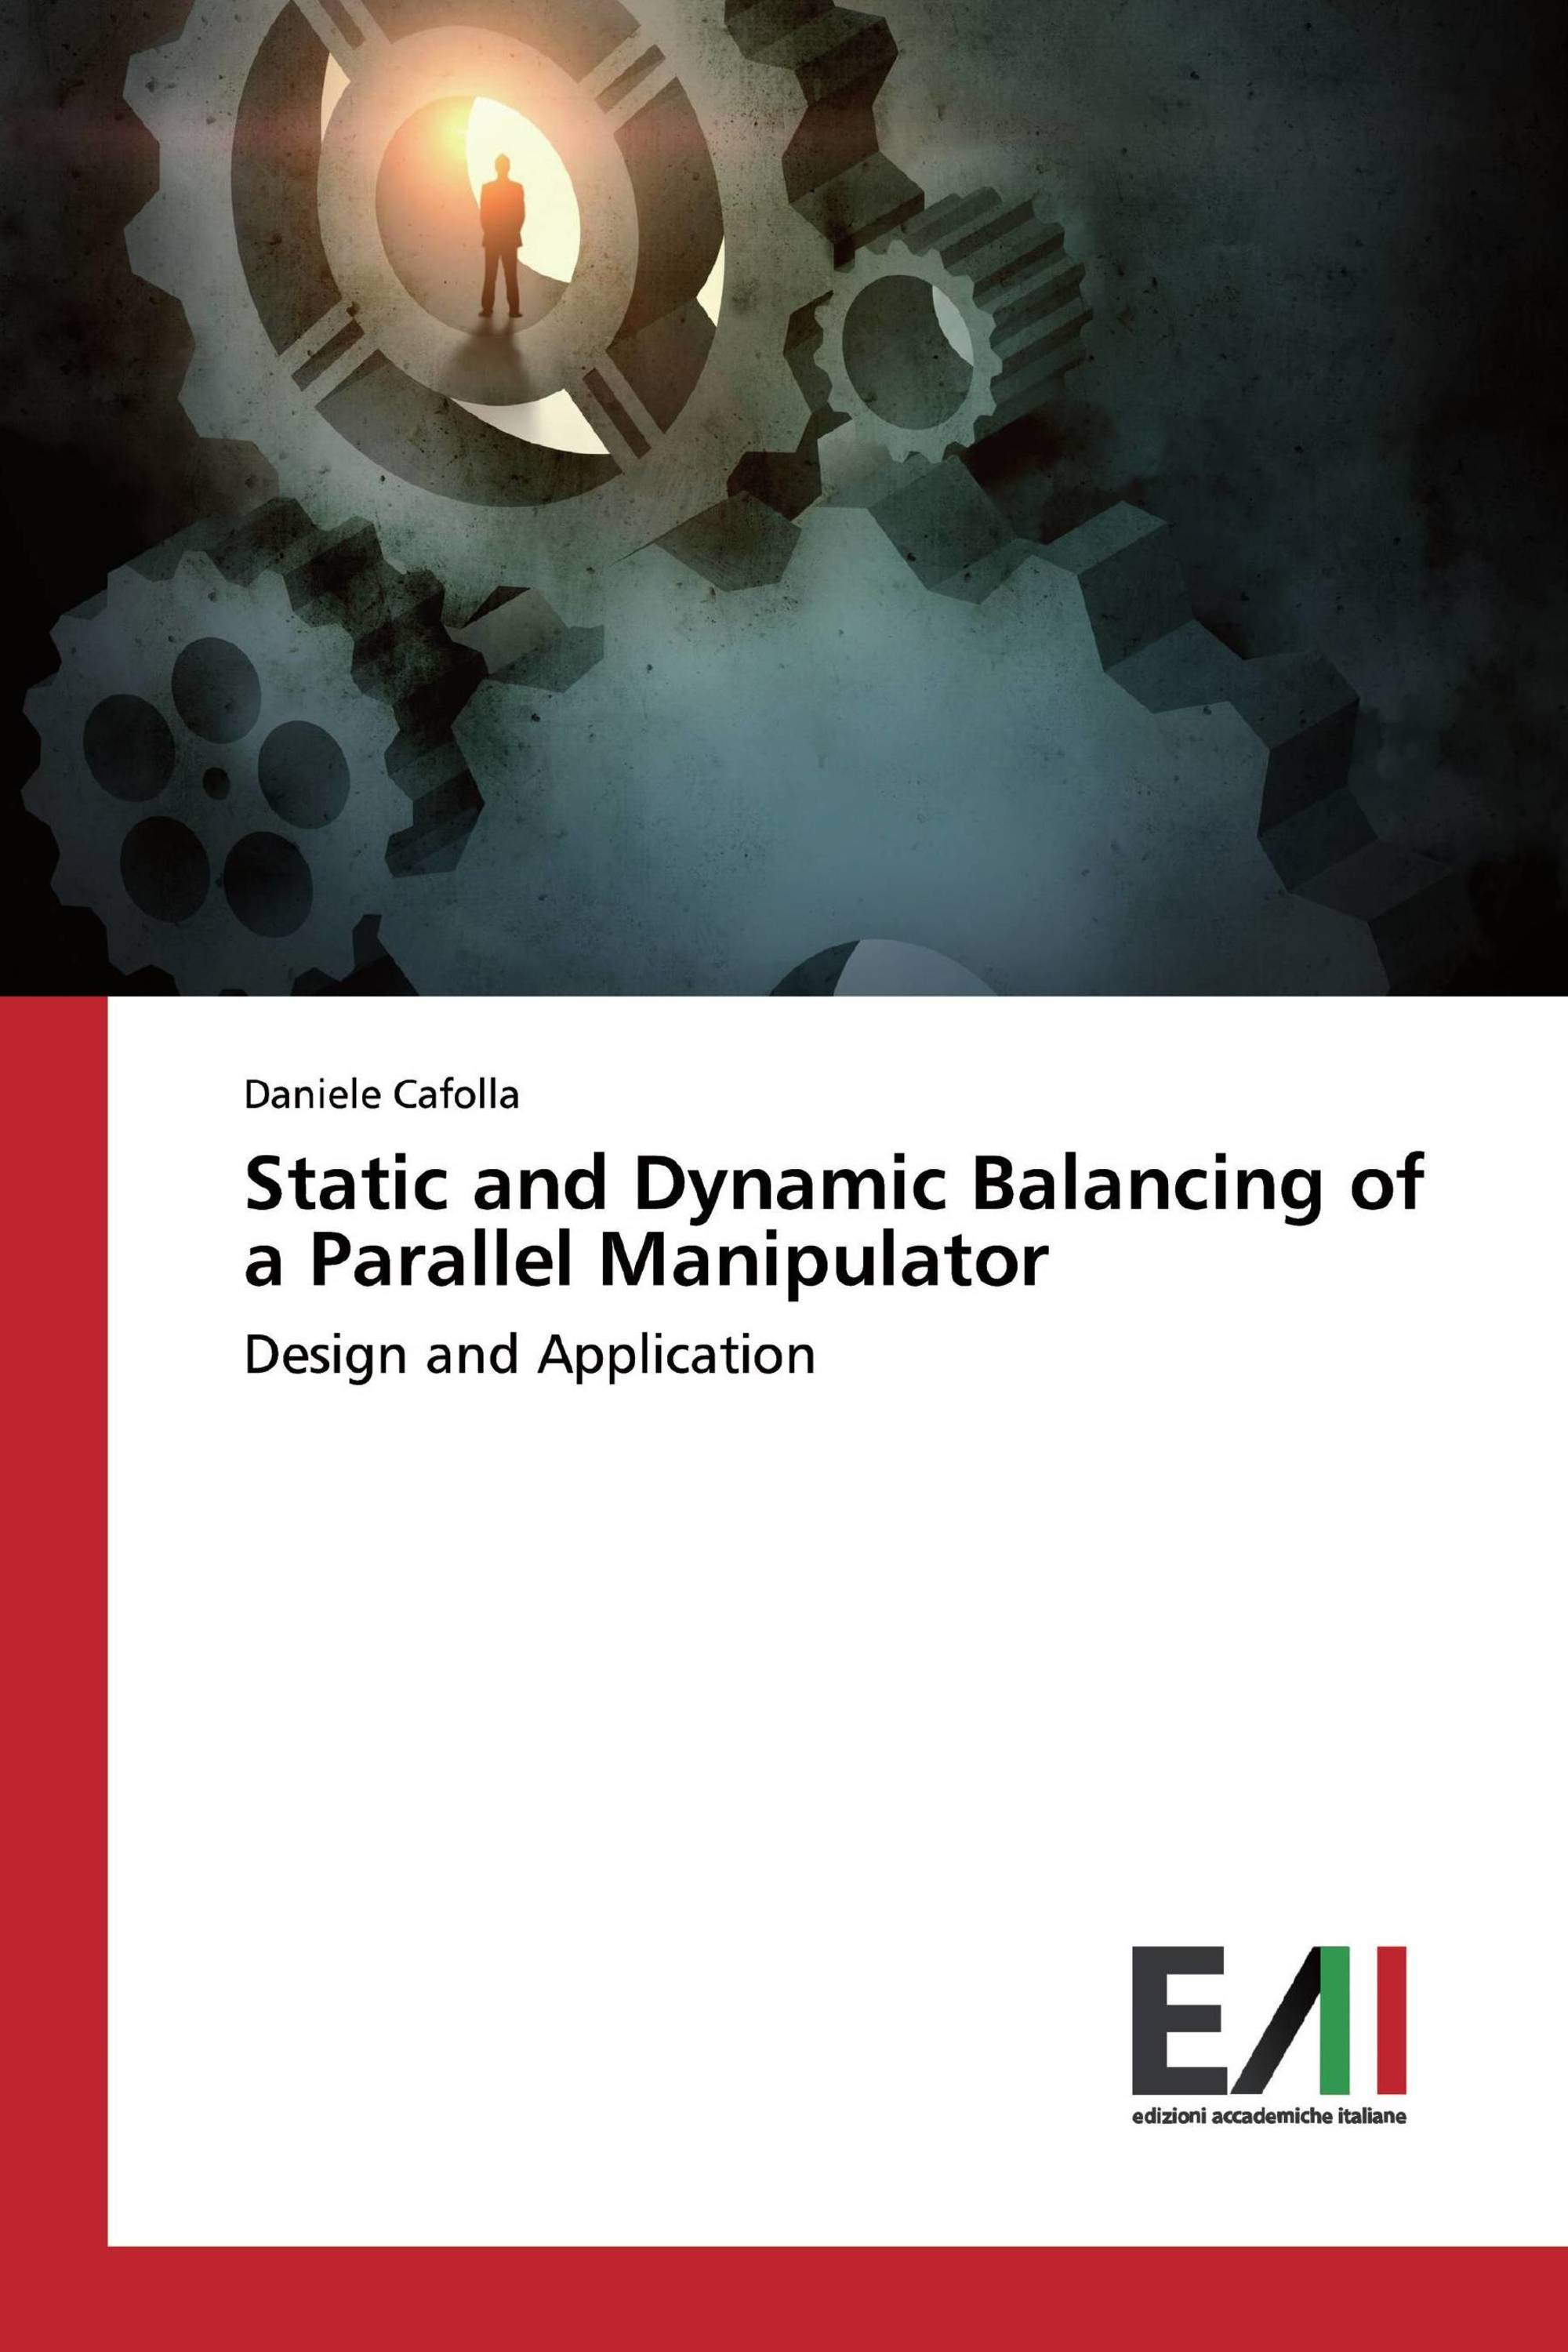 Static and Dynamic Balancing of a Parallel Manipulator